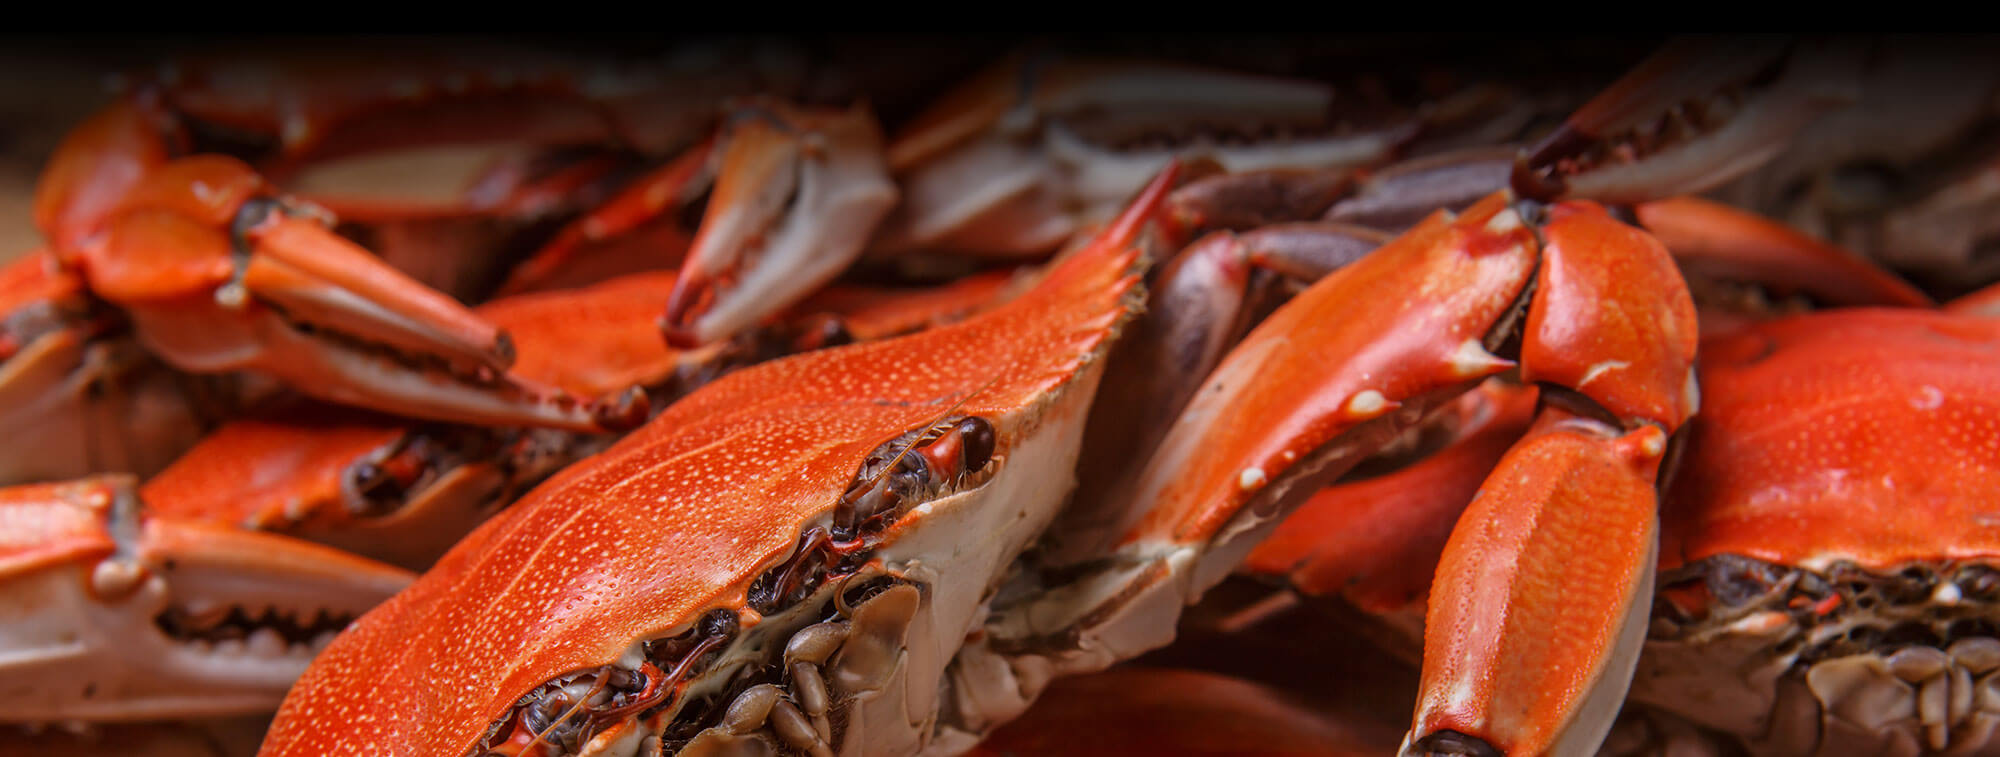 Best crabs salisbury md one fish two fish crabs seafood for Is fish seafood